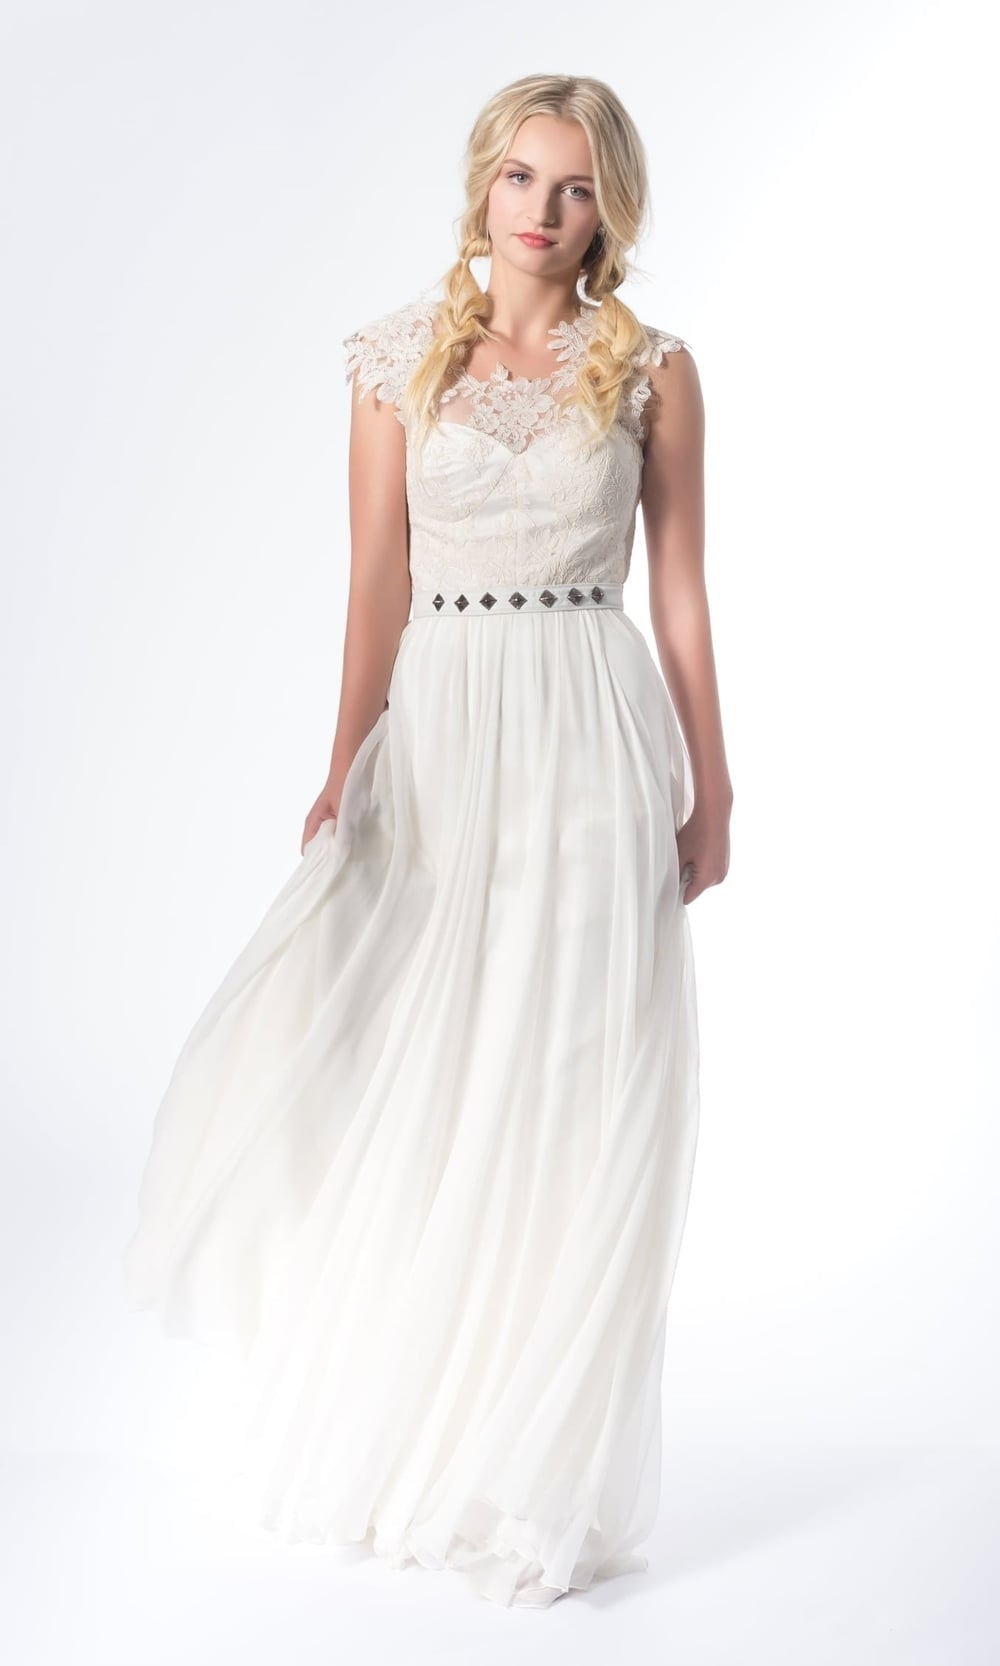 Shown with genuine leather studded belt, available at Alt. Brides